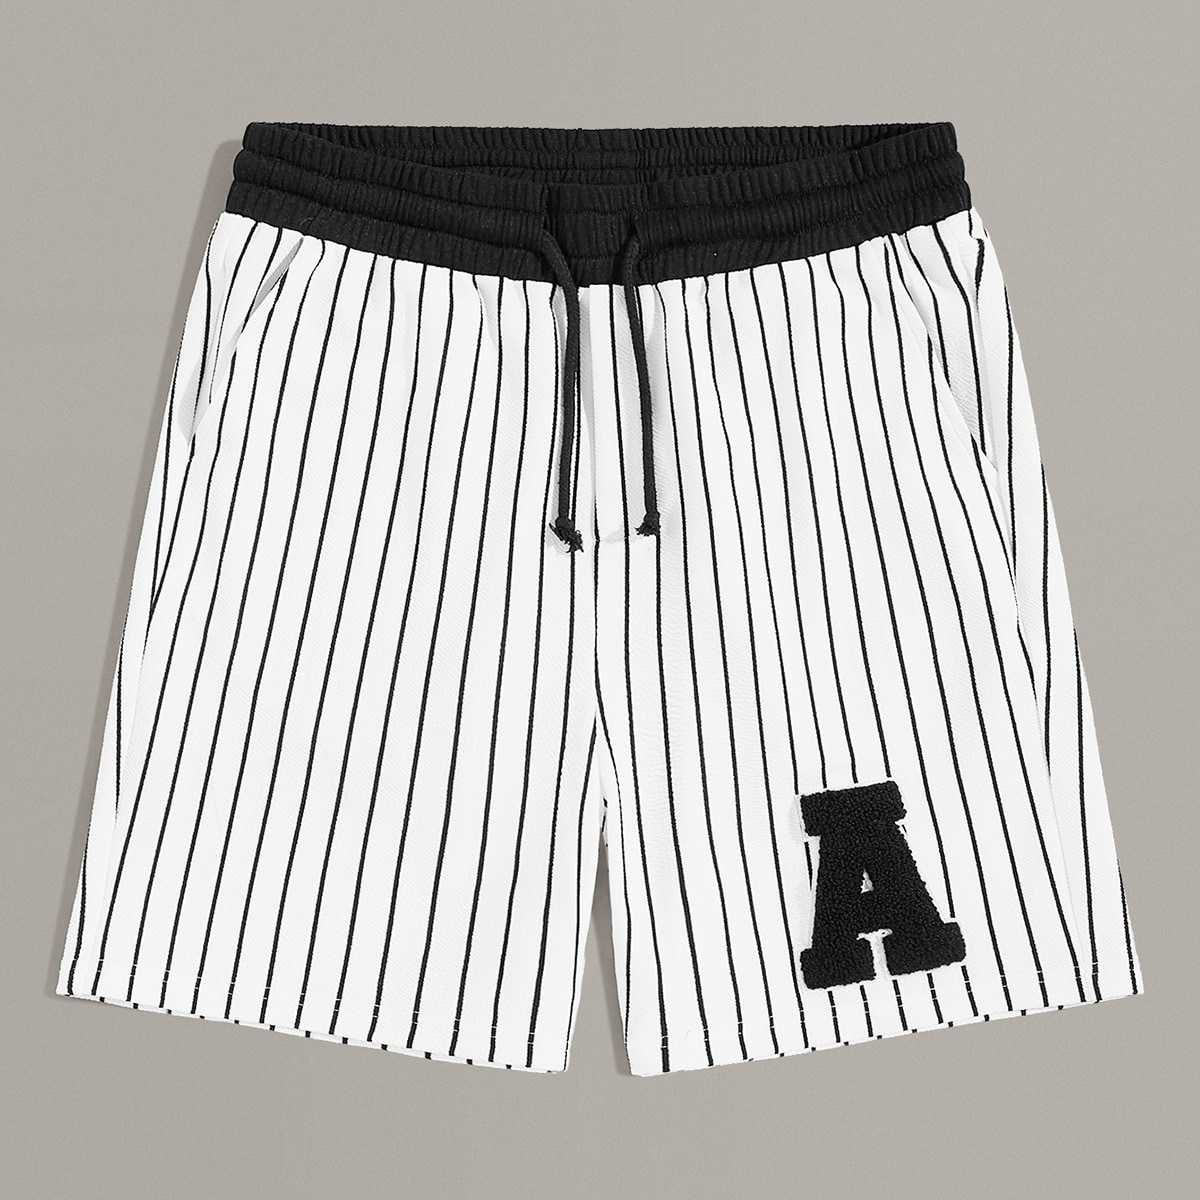 Guys Patched Detail Drawstring Waist Striped Shorts in White by ROMWE on GOOFASH